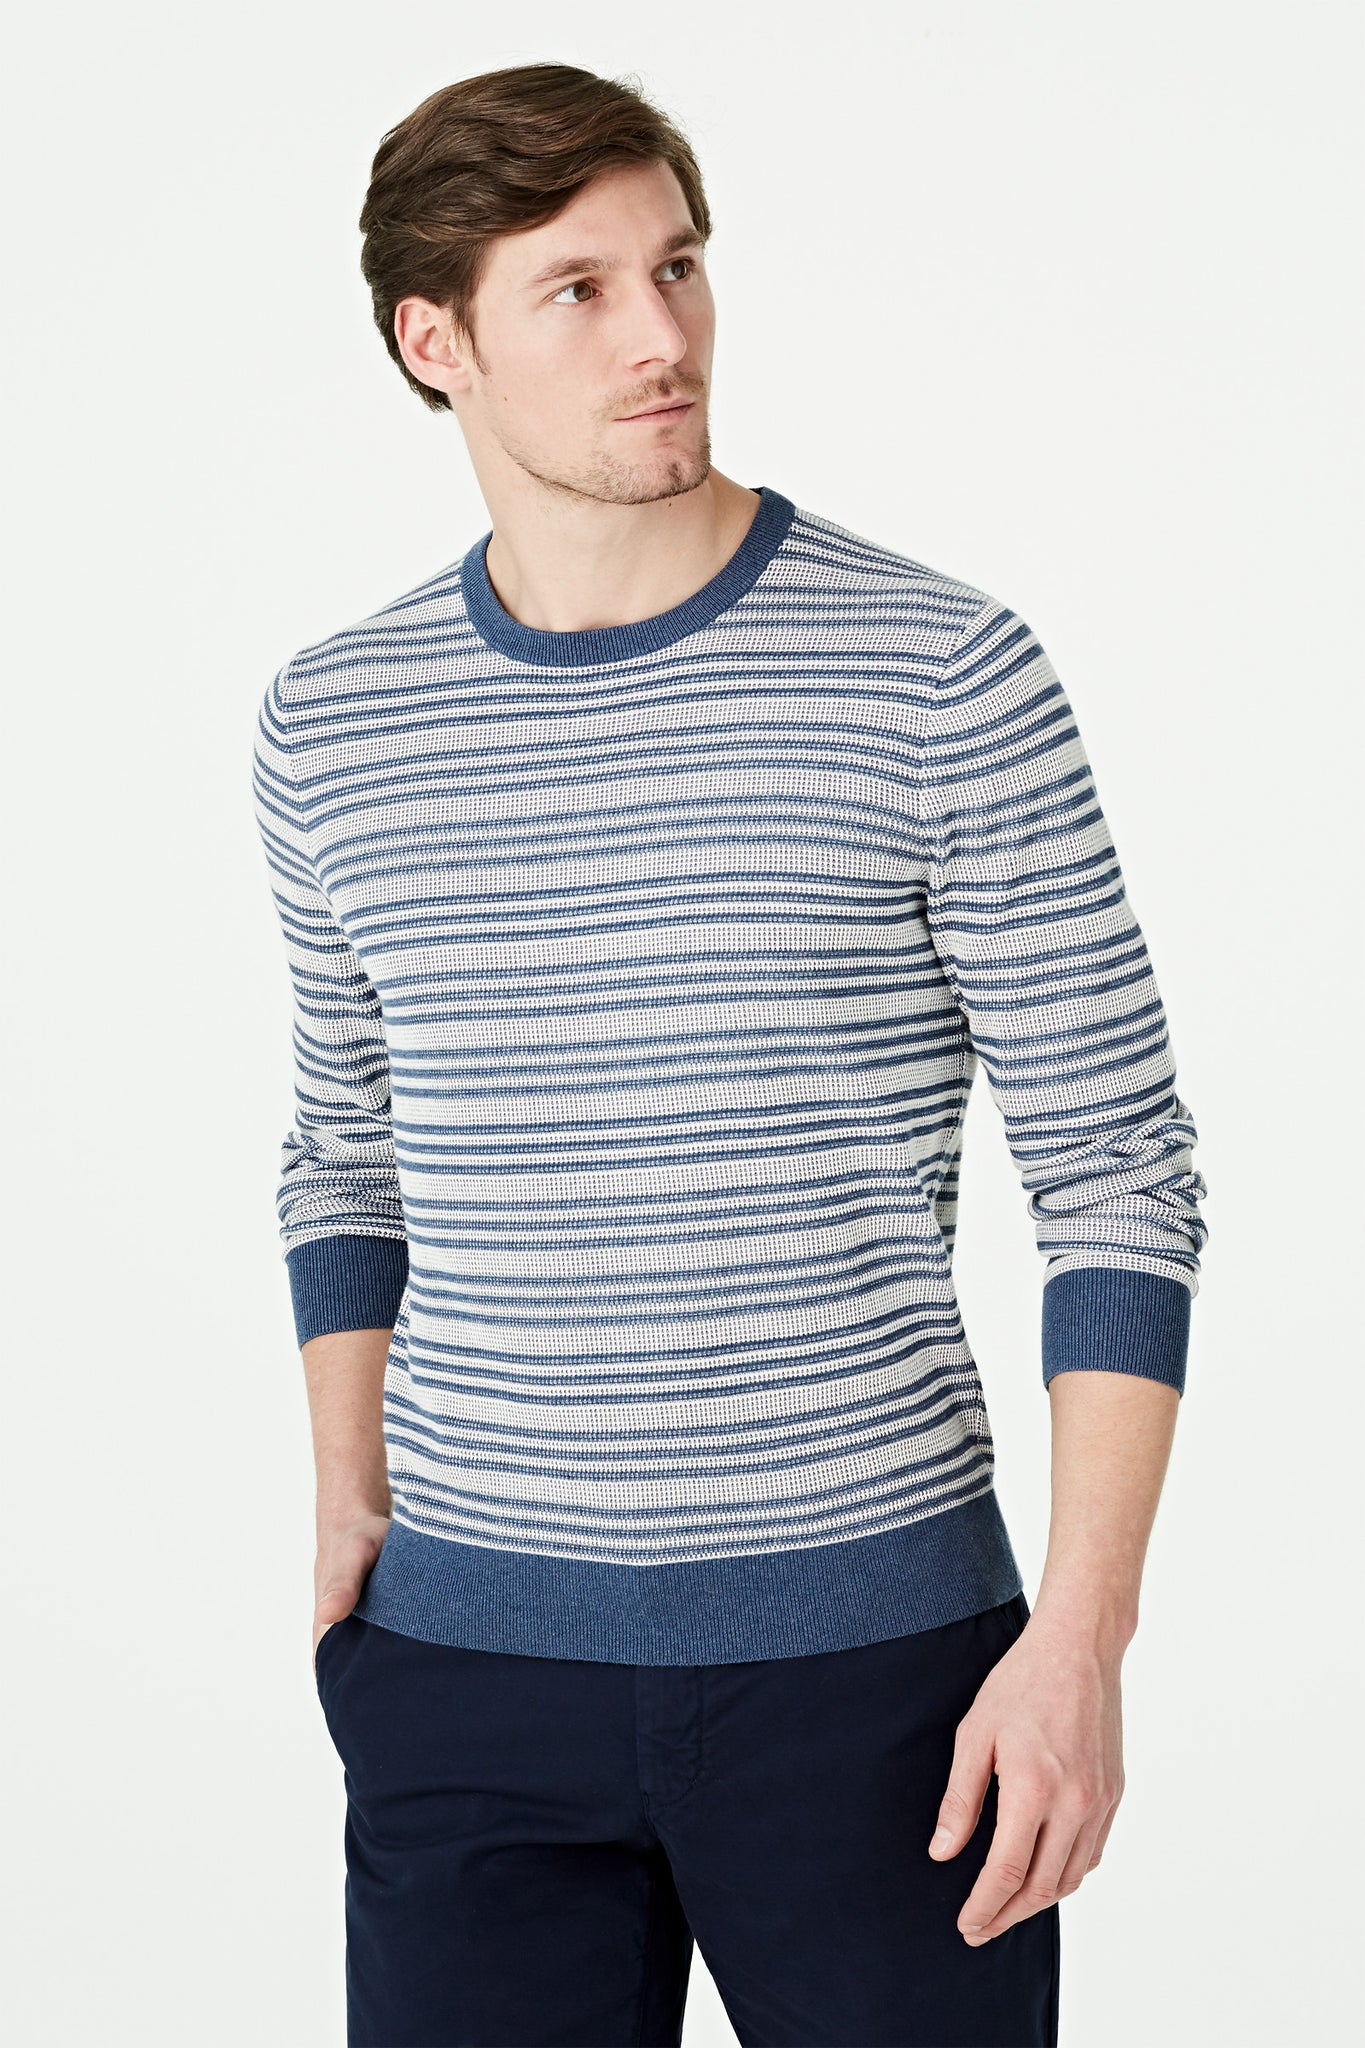 Twotone Crew Neck Sweater